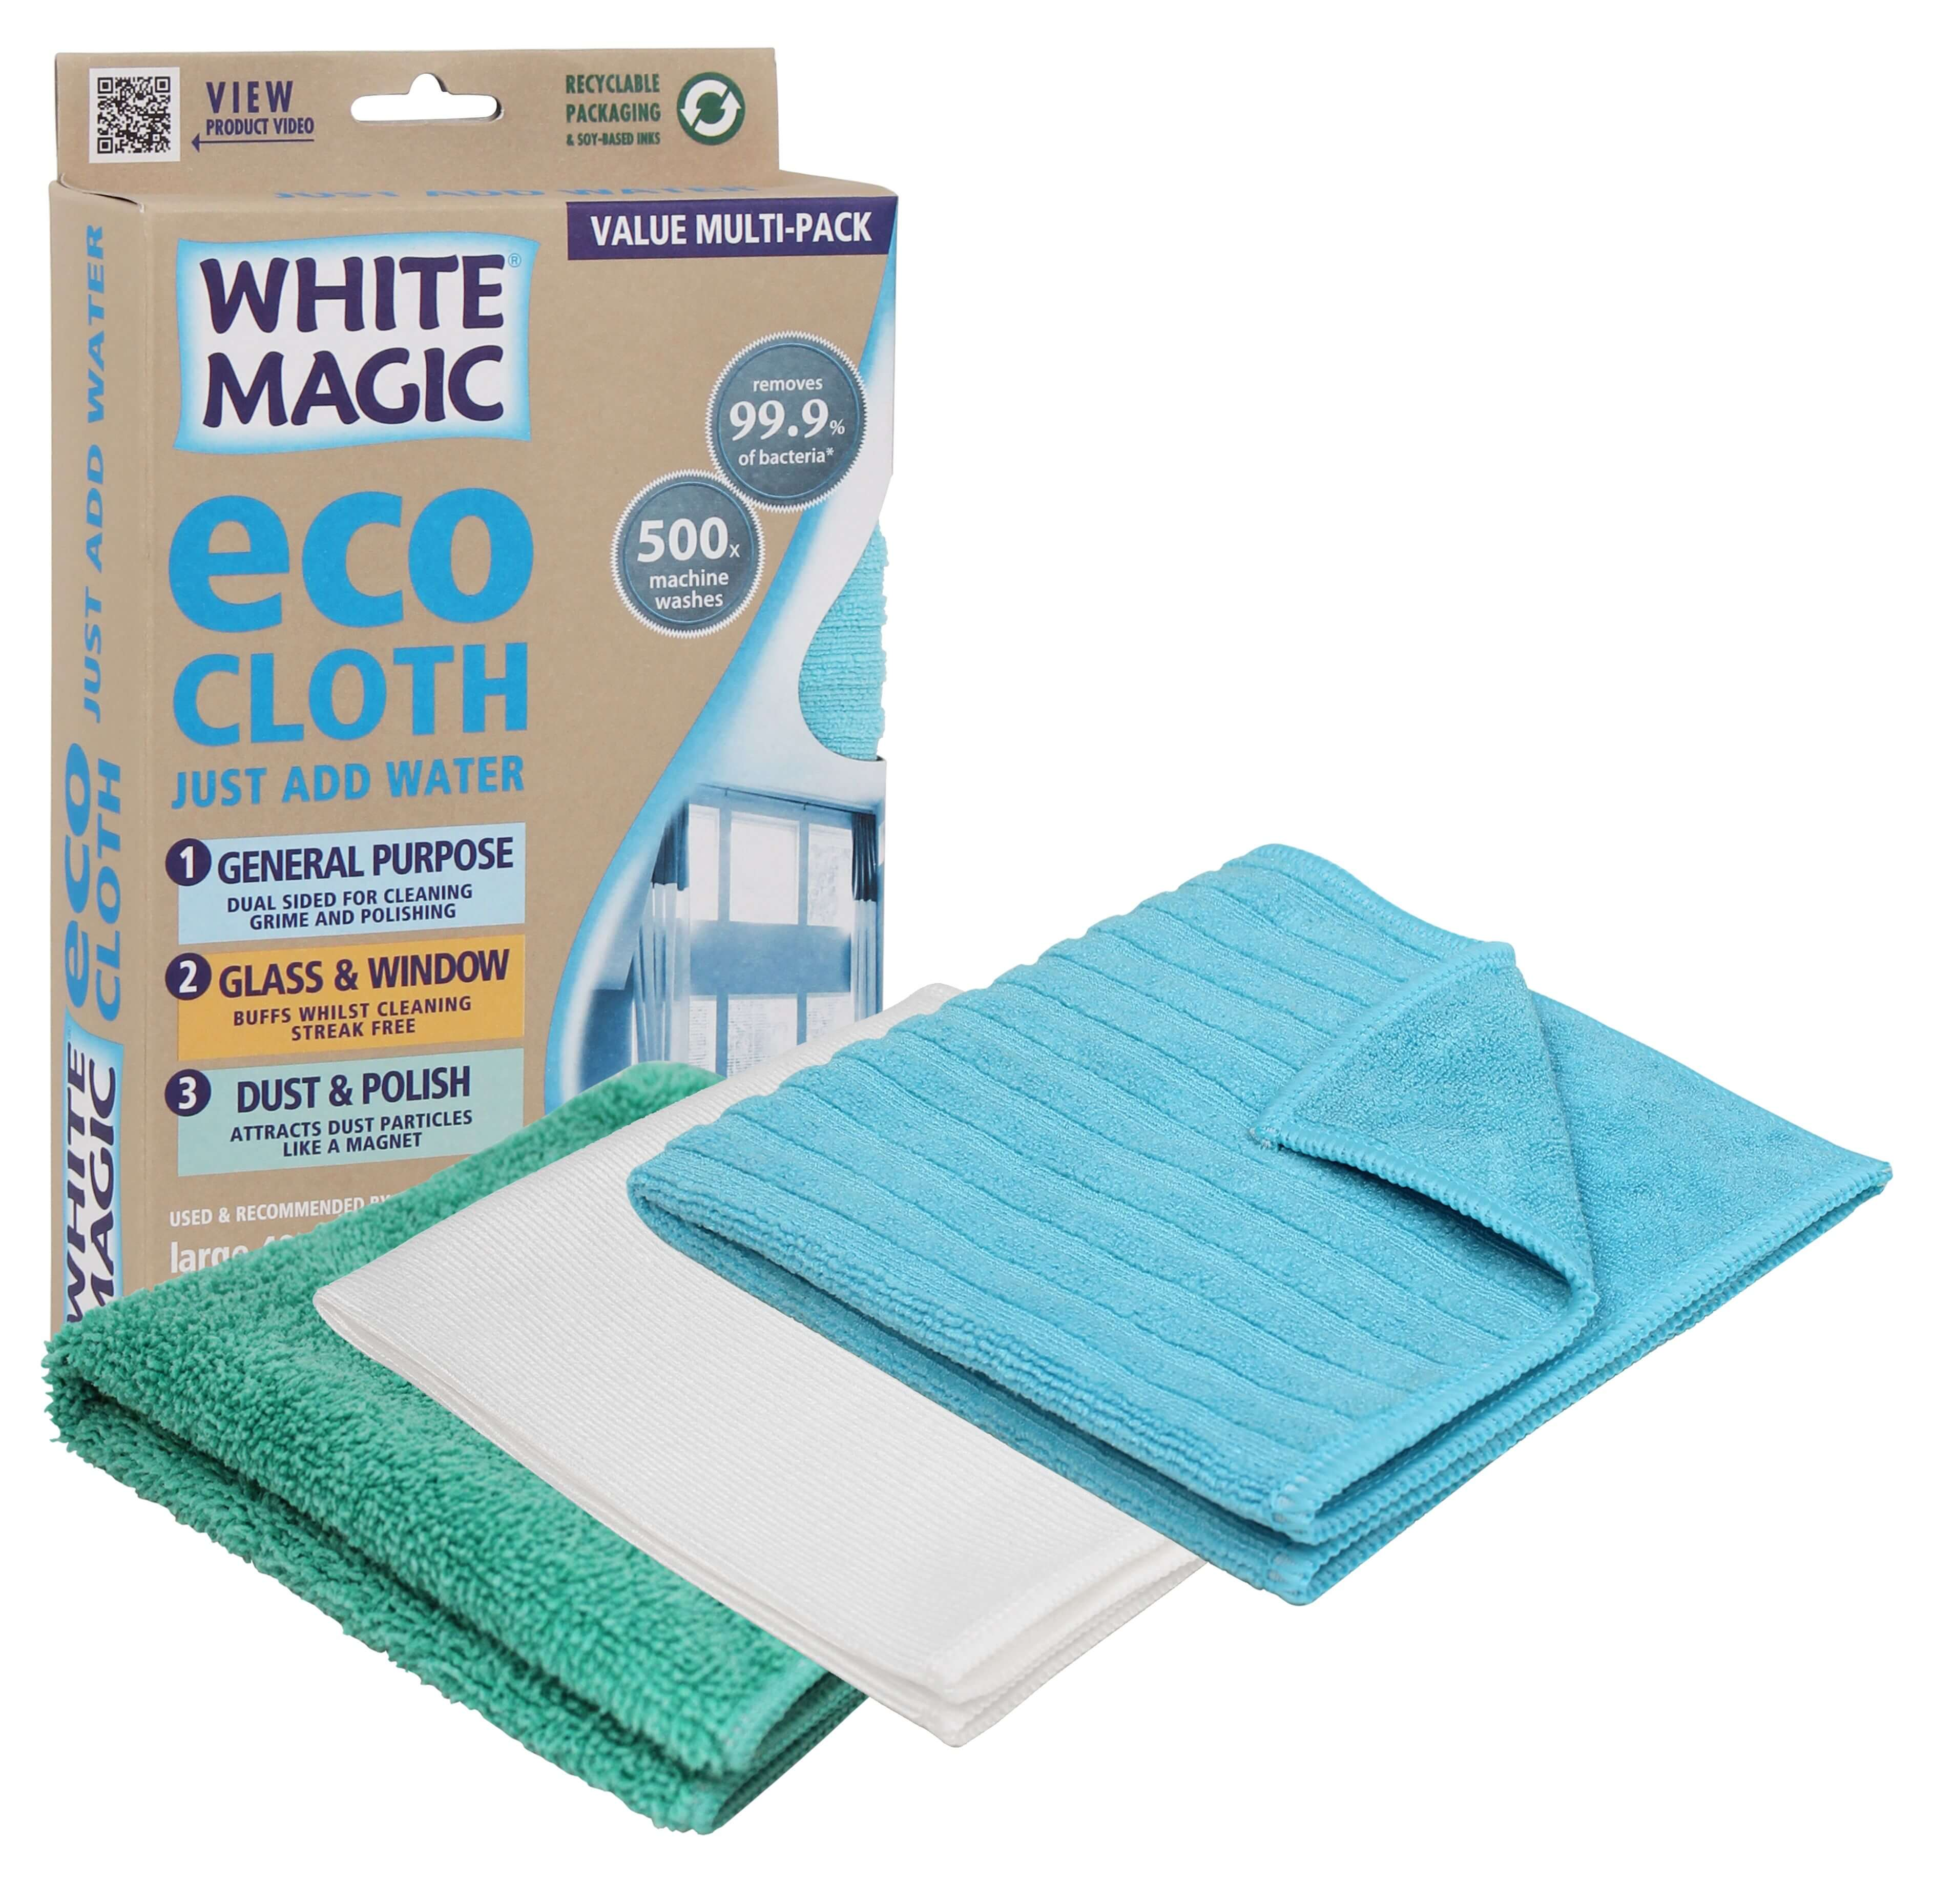 Eco Cloth Household Value Pack